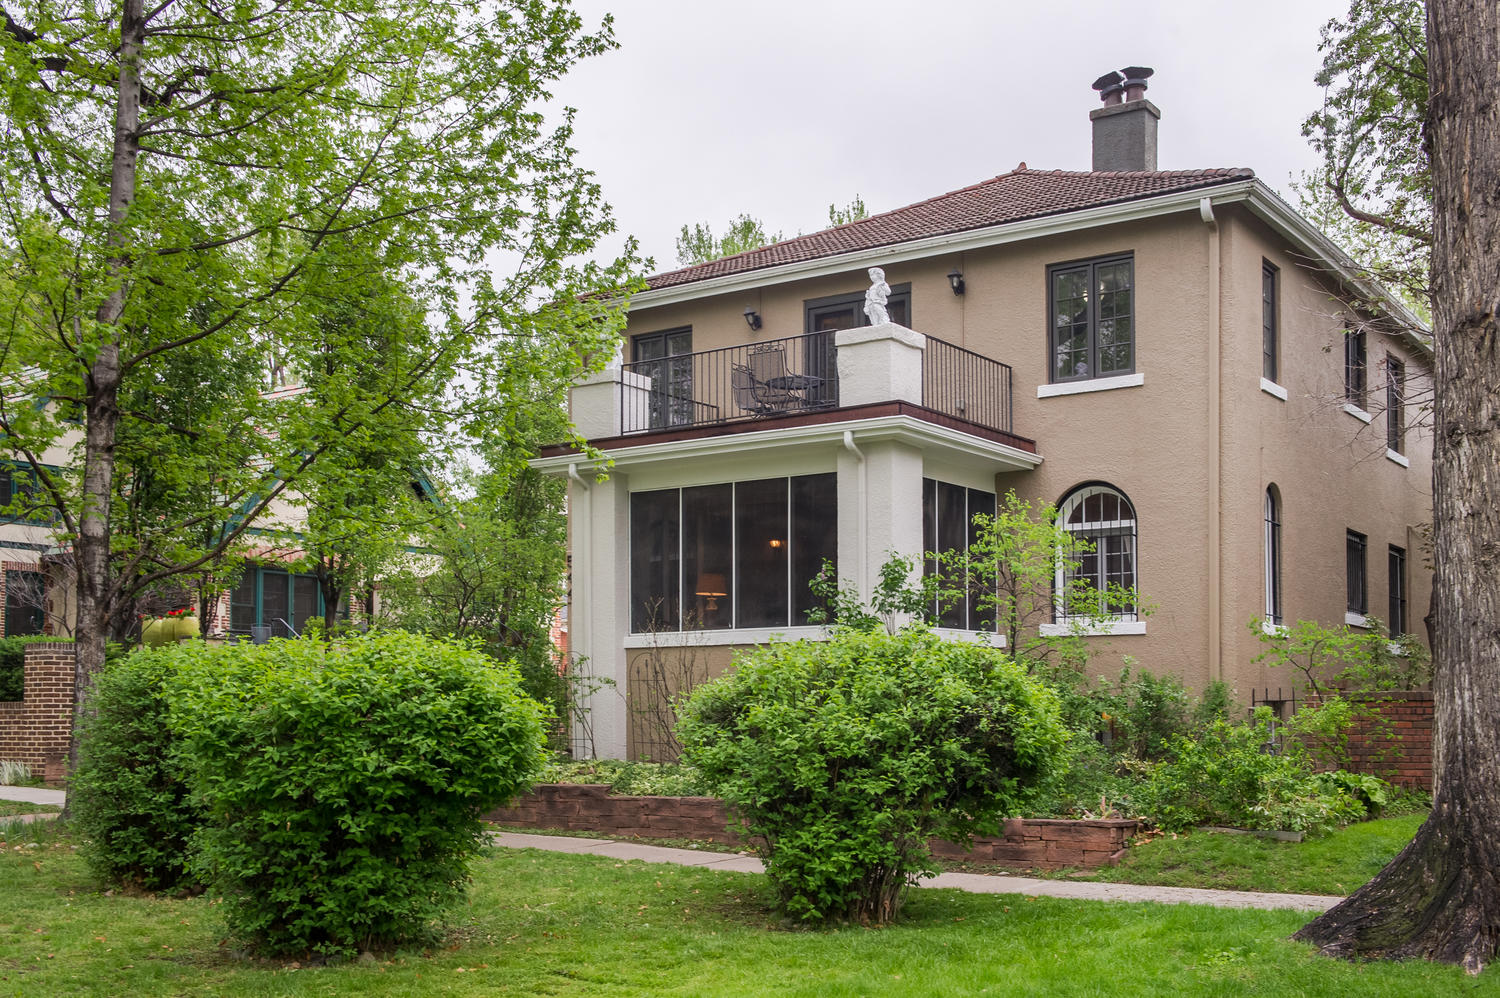 Single Family Home for Active at Stunning Williams Parkway Two Story 544 Williams Street Denver, Colorado 80218 United States